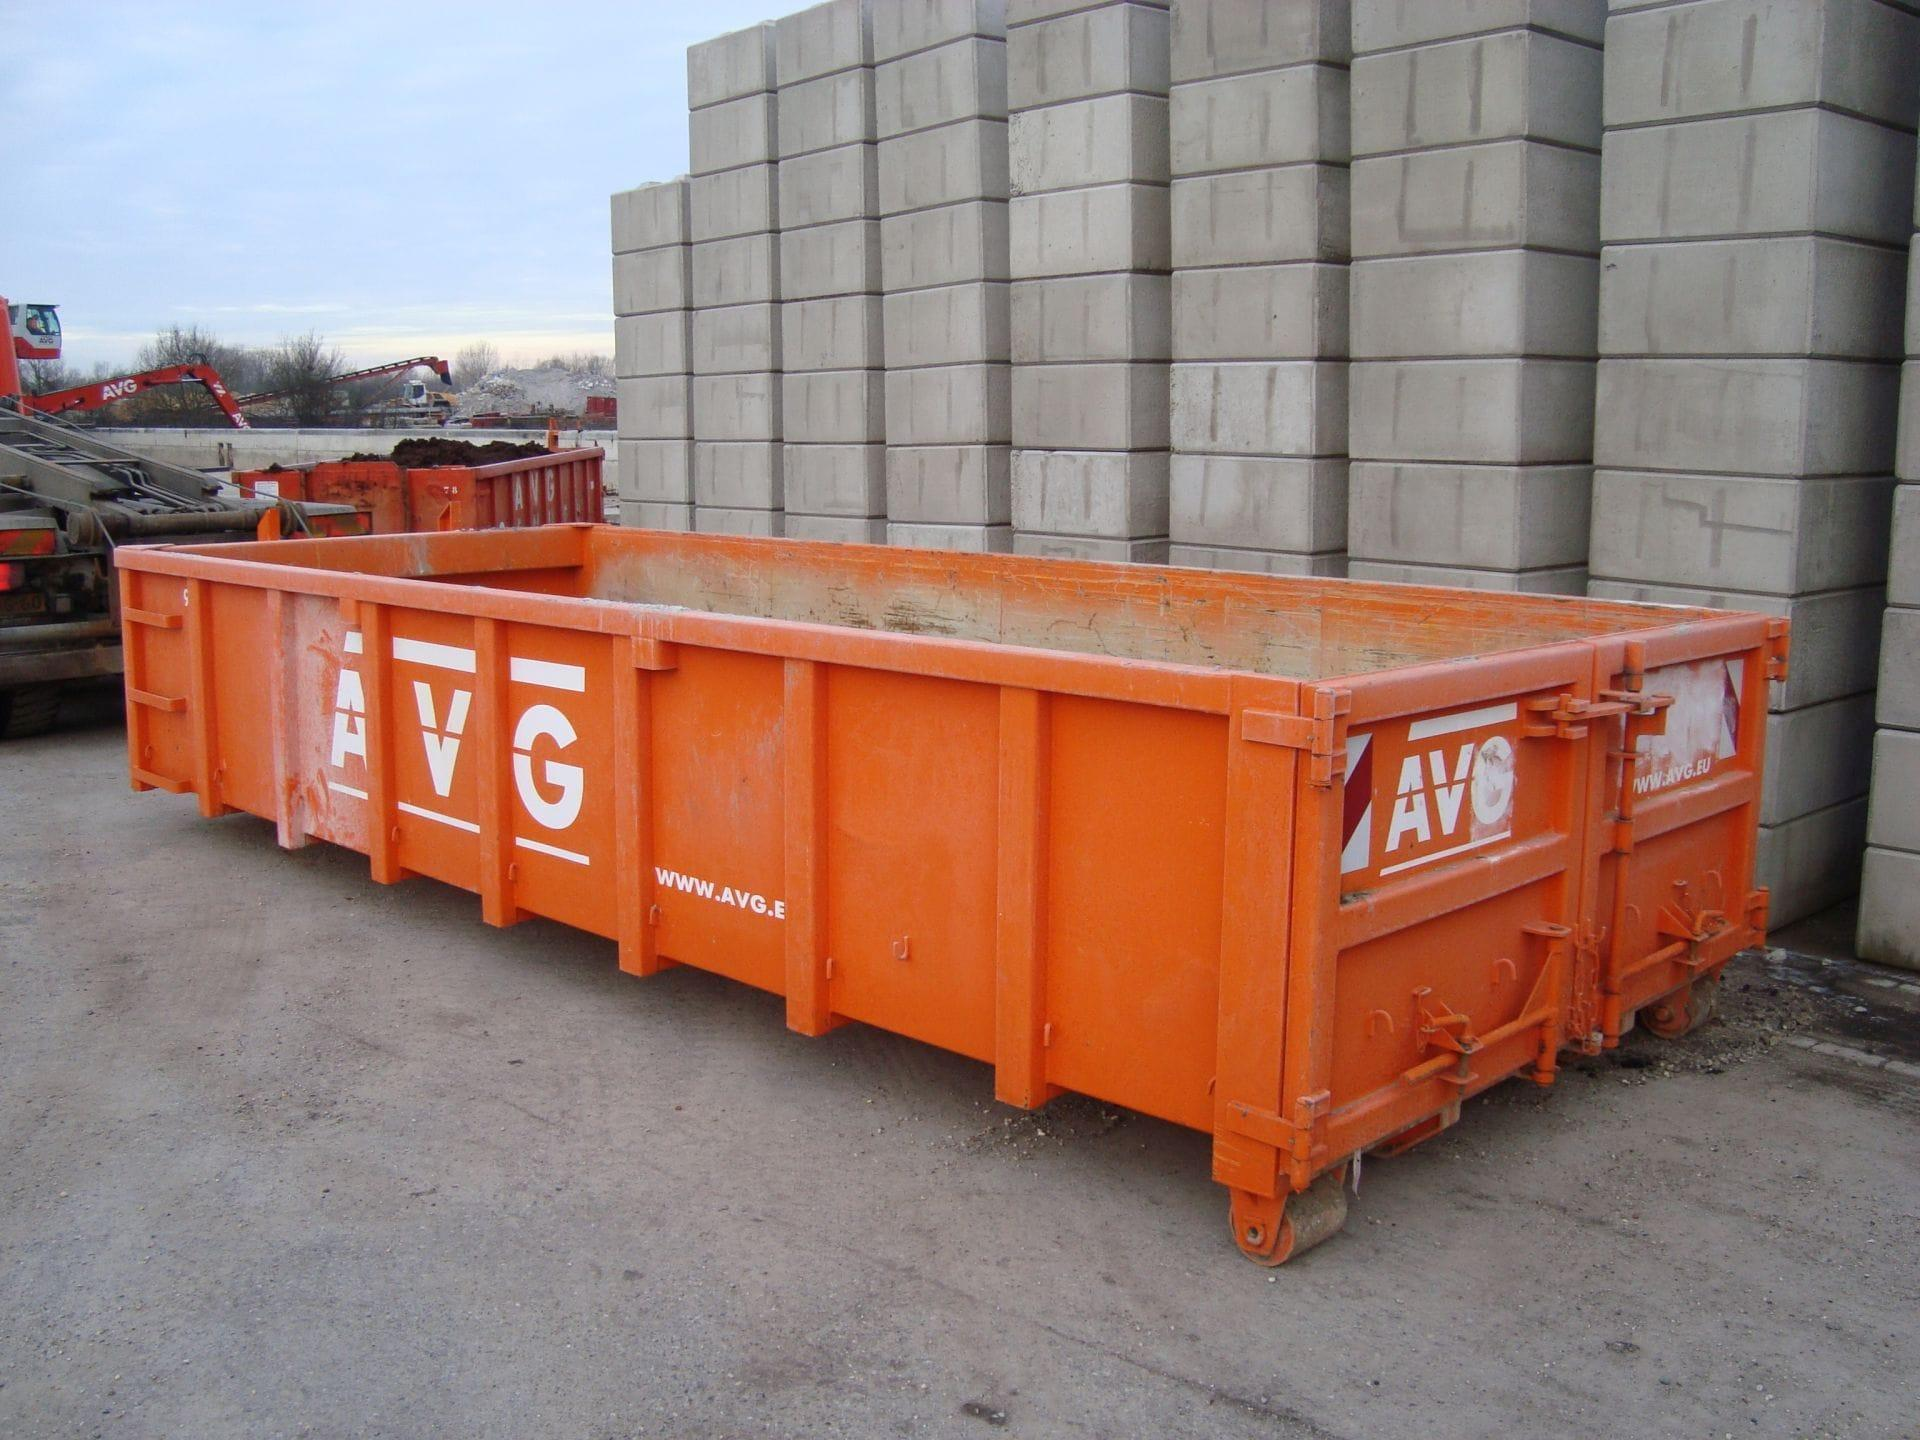 lange-container-14-avg-bouwstoffen